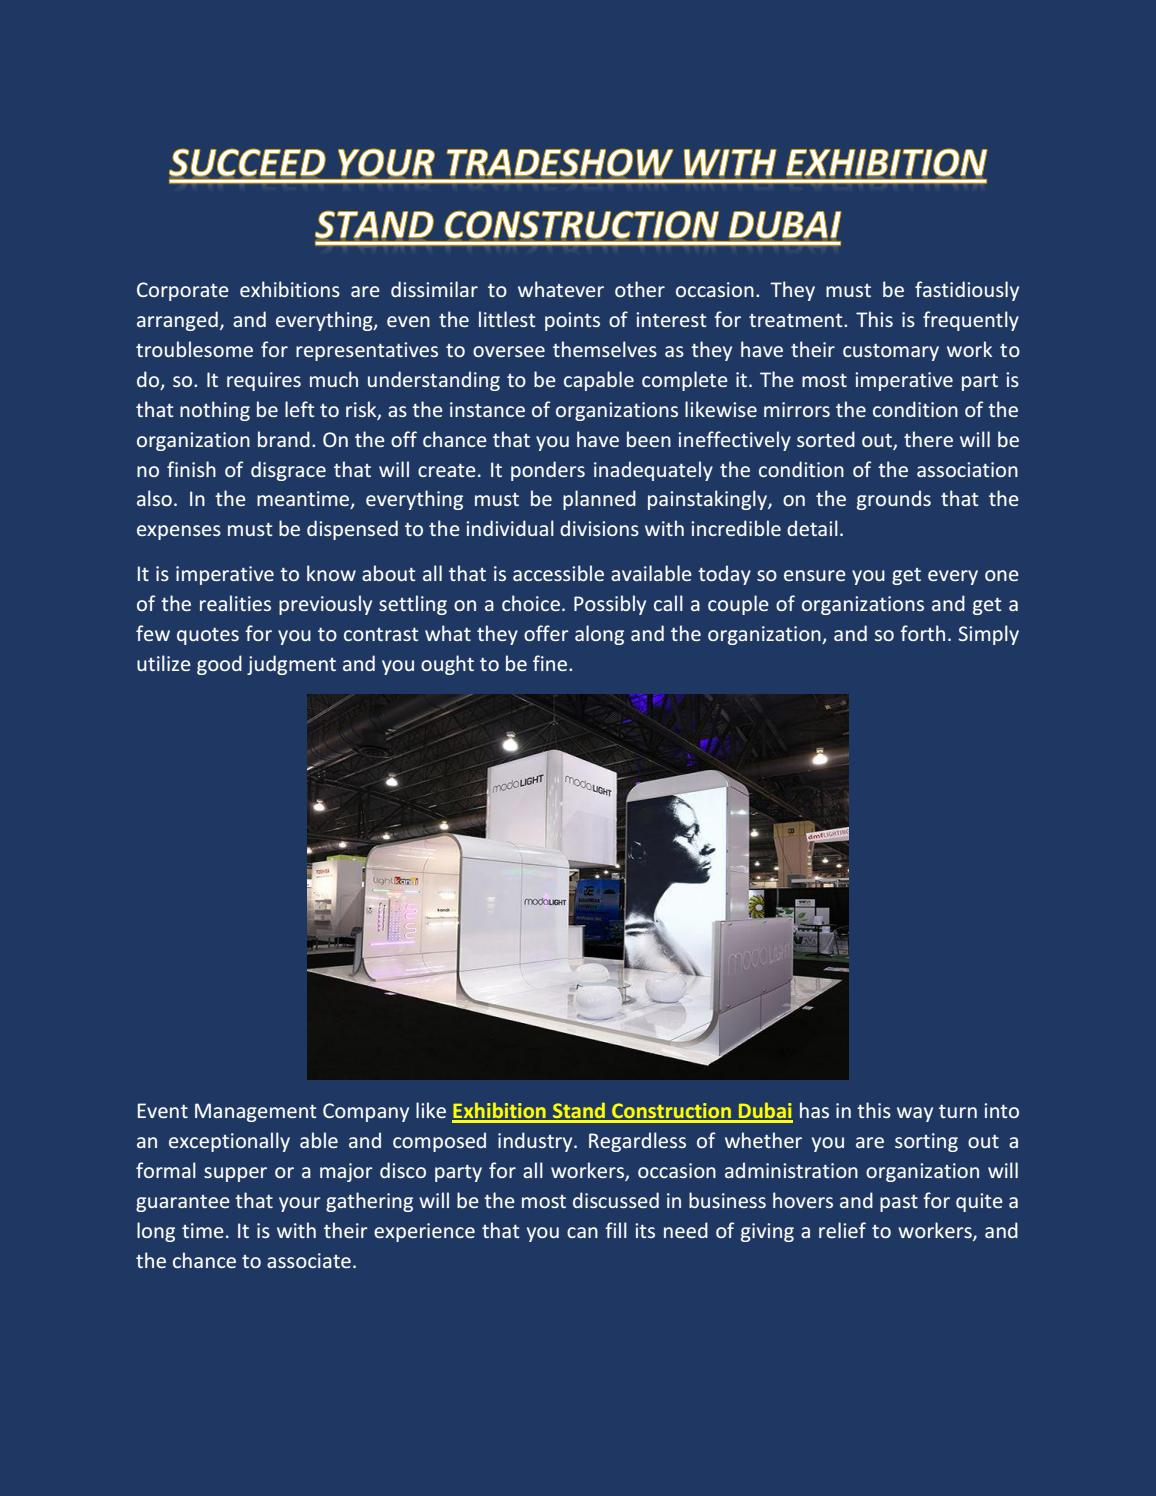 Succeed your tradeshow with exhibition stand construction dubai